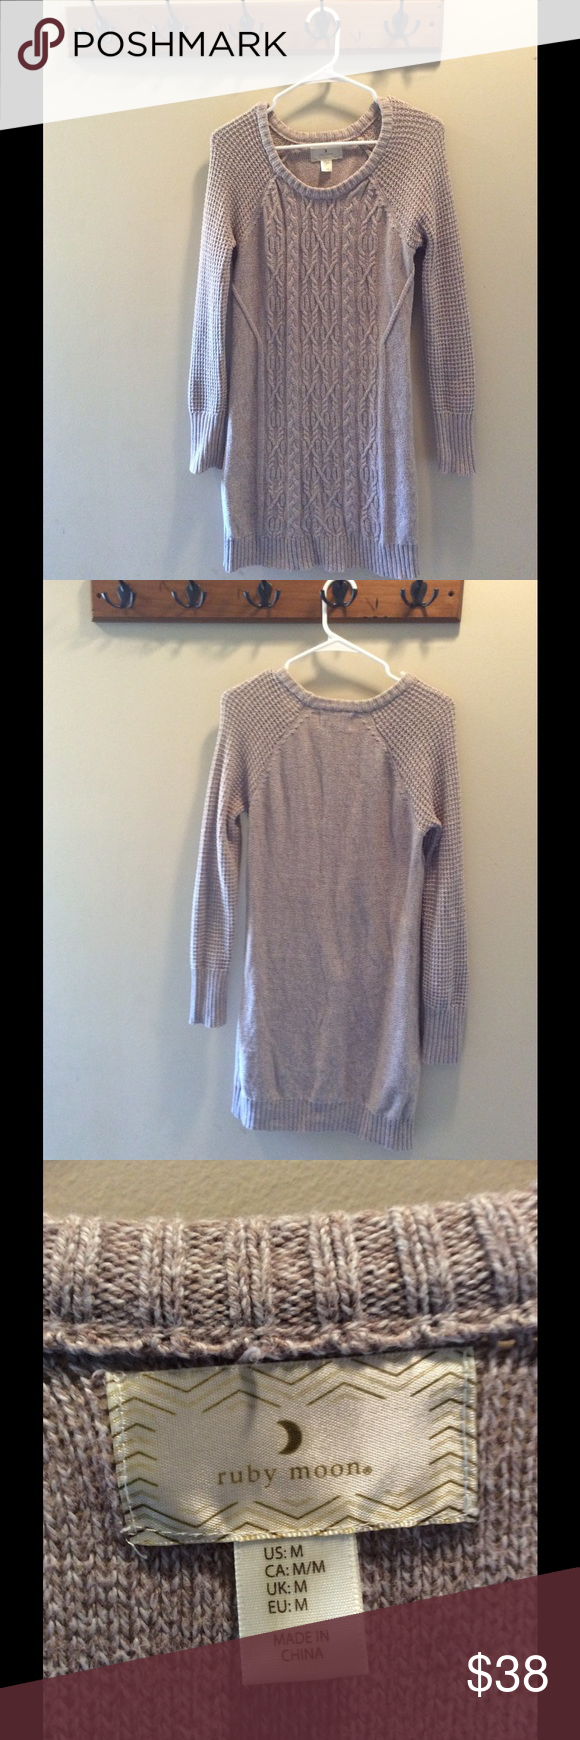 Ruby Moon Knit Sweater Dress Beige Brown Cream Ruby Moon Knit Sweater Dress Beige Brown Cream. In excellent used condition! No snags, no rips, no pilling, and no stains. It looks like new. Ruby Moon Dresses Long Sleeve